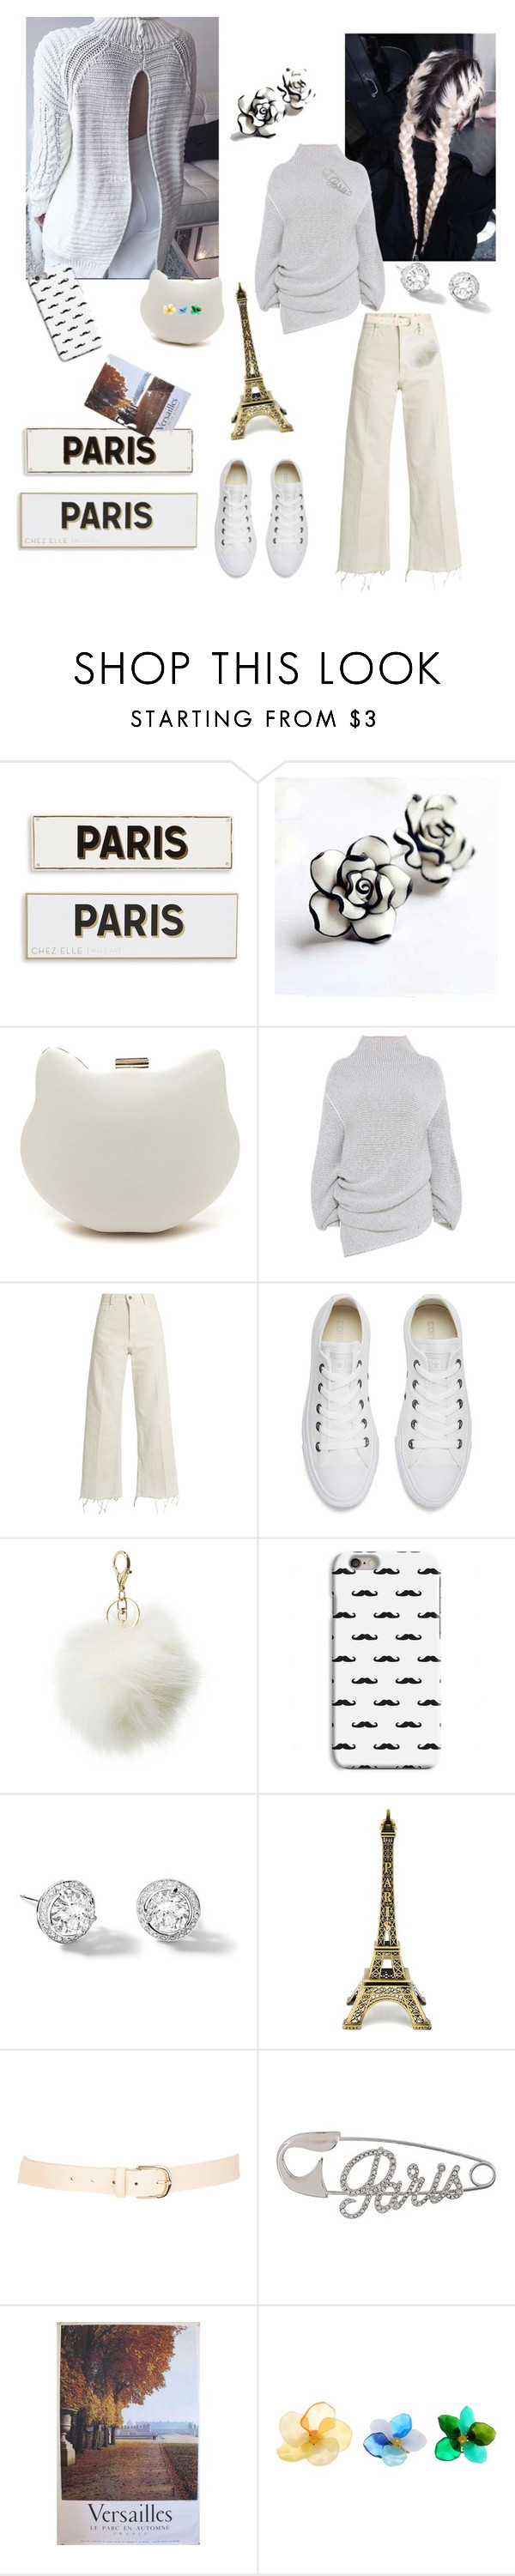 """French Vanilla"" by bromaxx ❤ liked on Polyvore featuring Rosanna, STELLA McCARTNEY, Rachel Comey, Converse, Charlotte Russe, Riviere, Maison Boinet, Sonia Rykiel and French Connection"